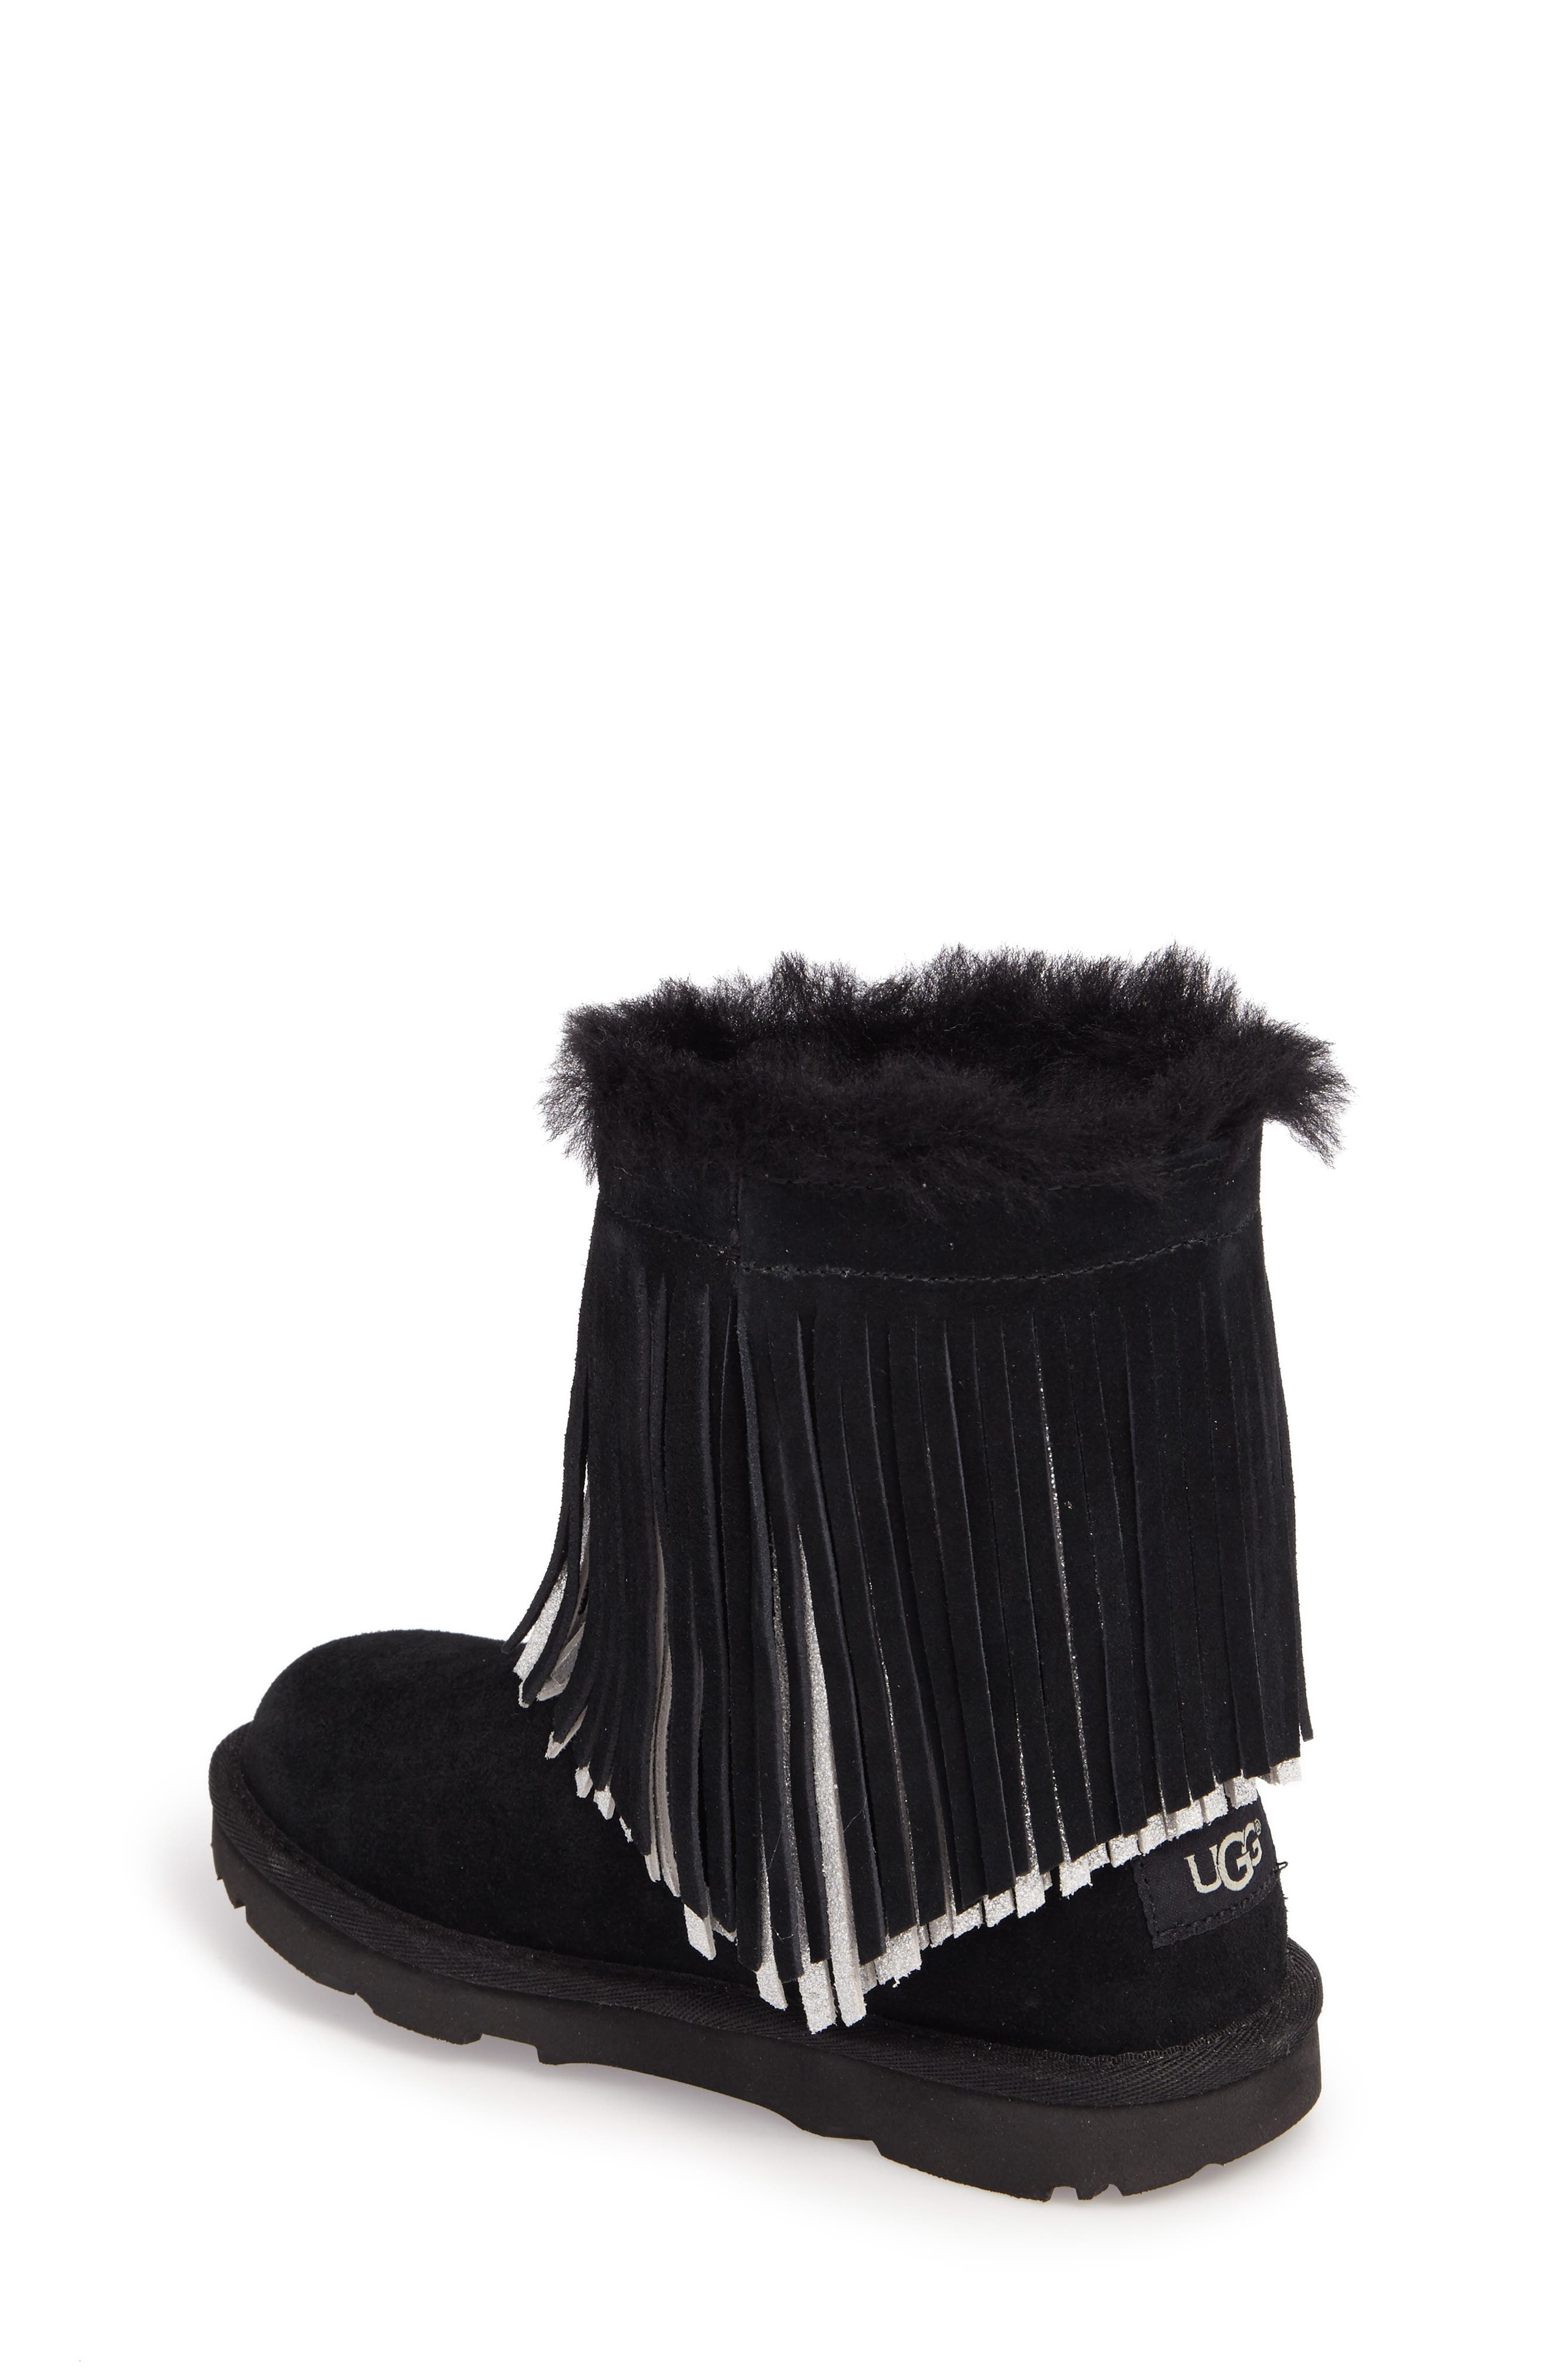 Alternate Image 2  - UGG® Classic II Short Fringe Water Resistant Genuine Shearling Boot (Walker, Toddler, Little Kid & Big Kid)